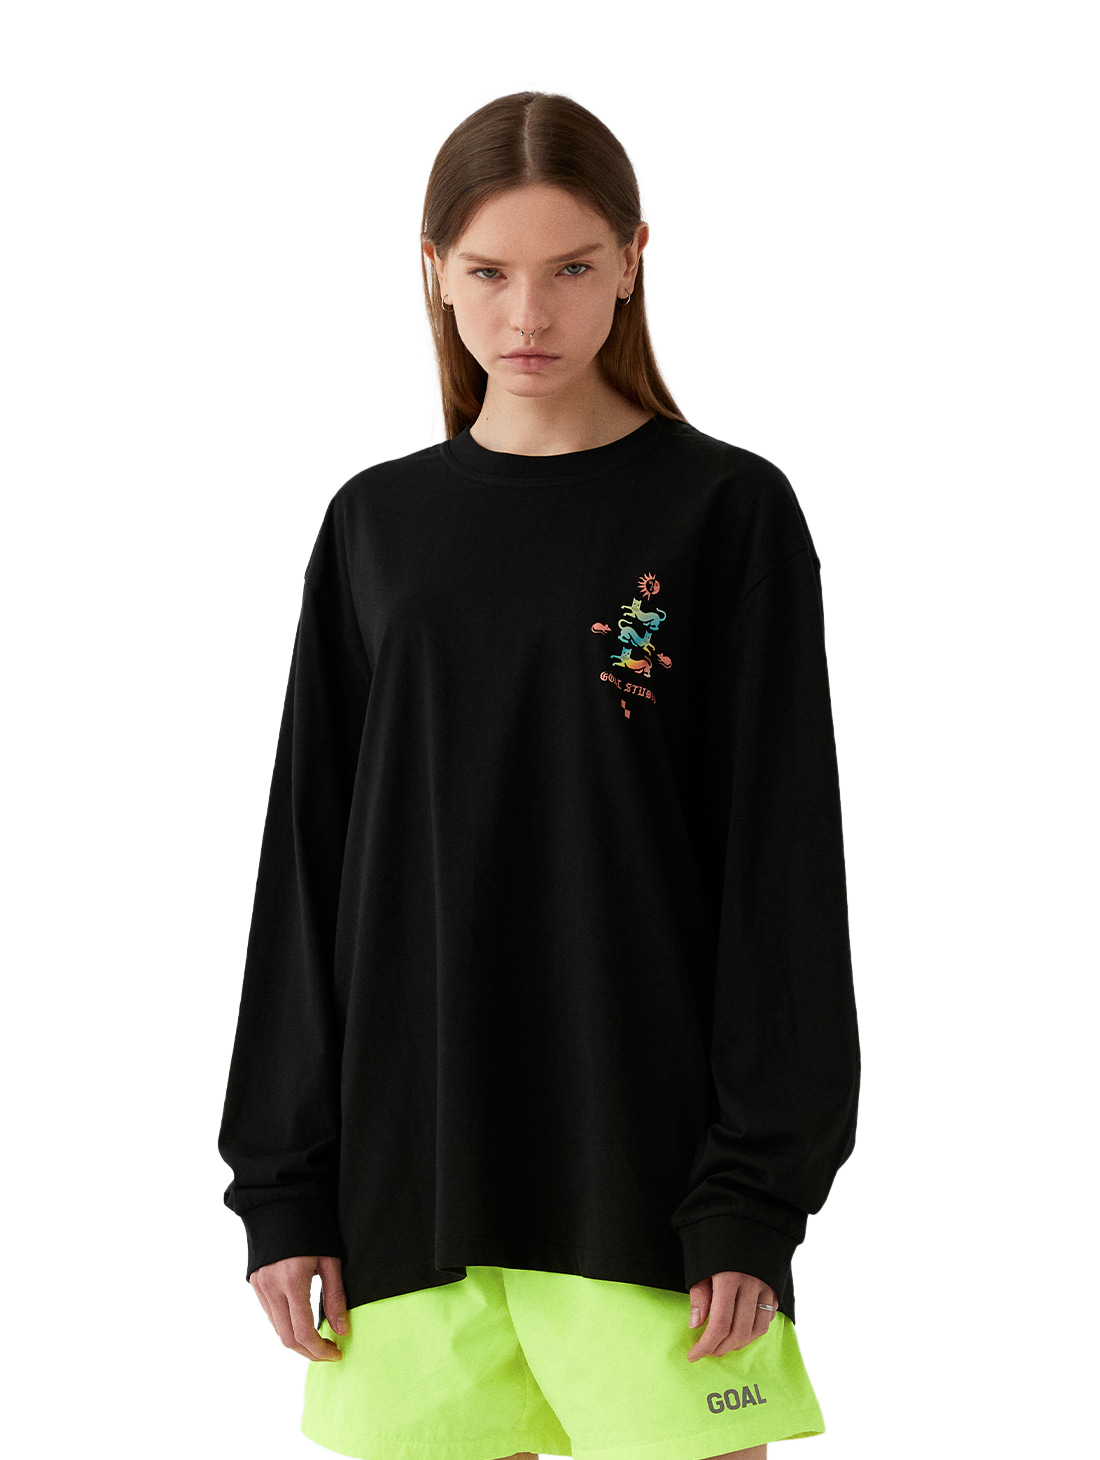 MC EMBLEM GRAPHIC LONG SLEEVE TEE - BLACK